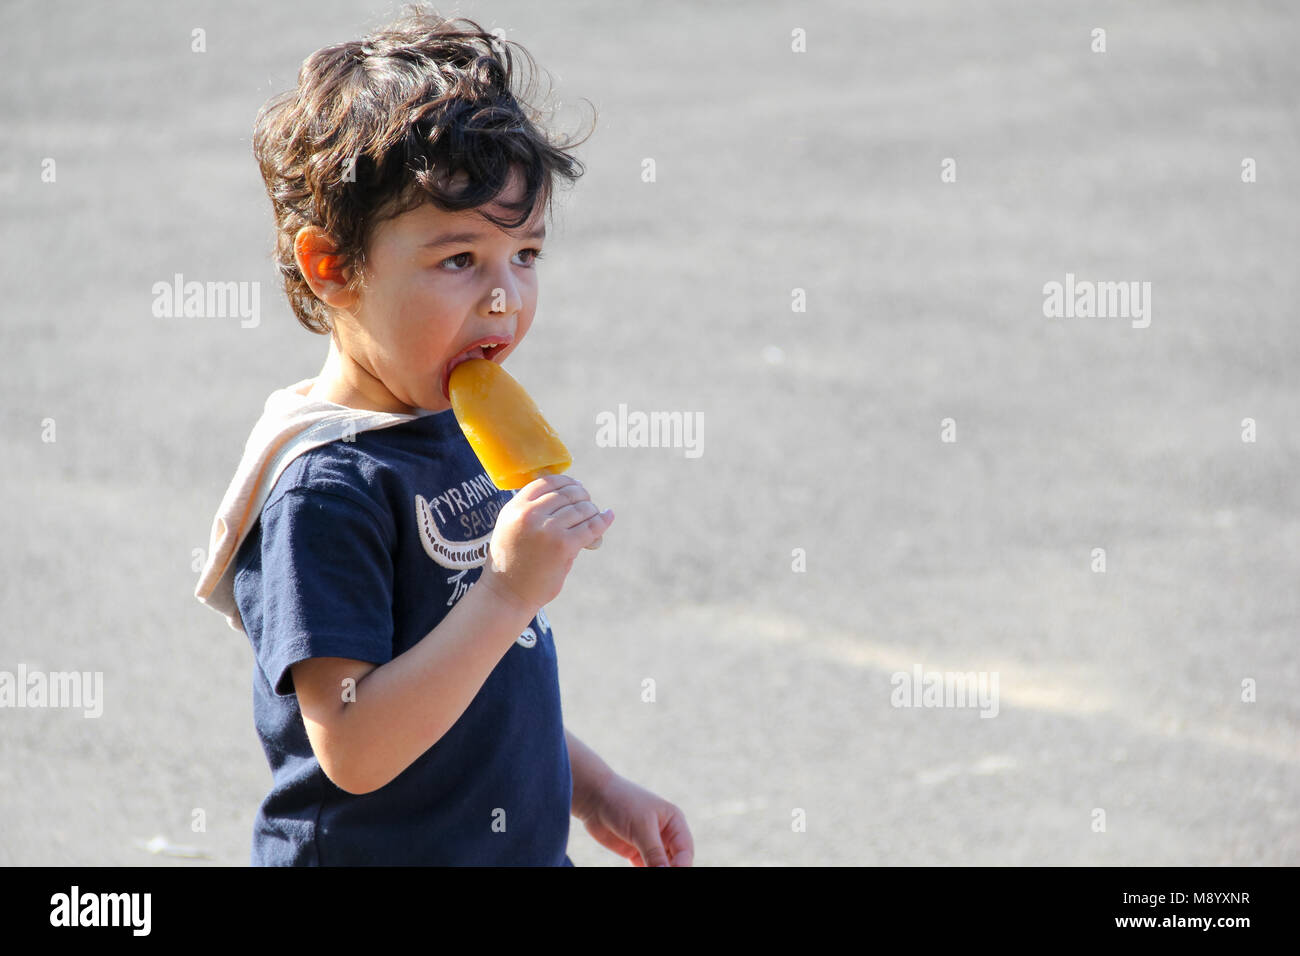 London, UK - July 09, 2017 - Little boy eating ice lolly at South Bank in hot weather - Stock Image